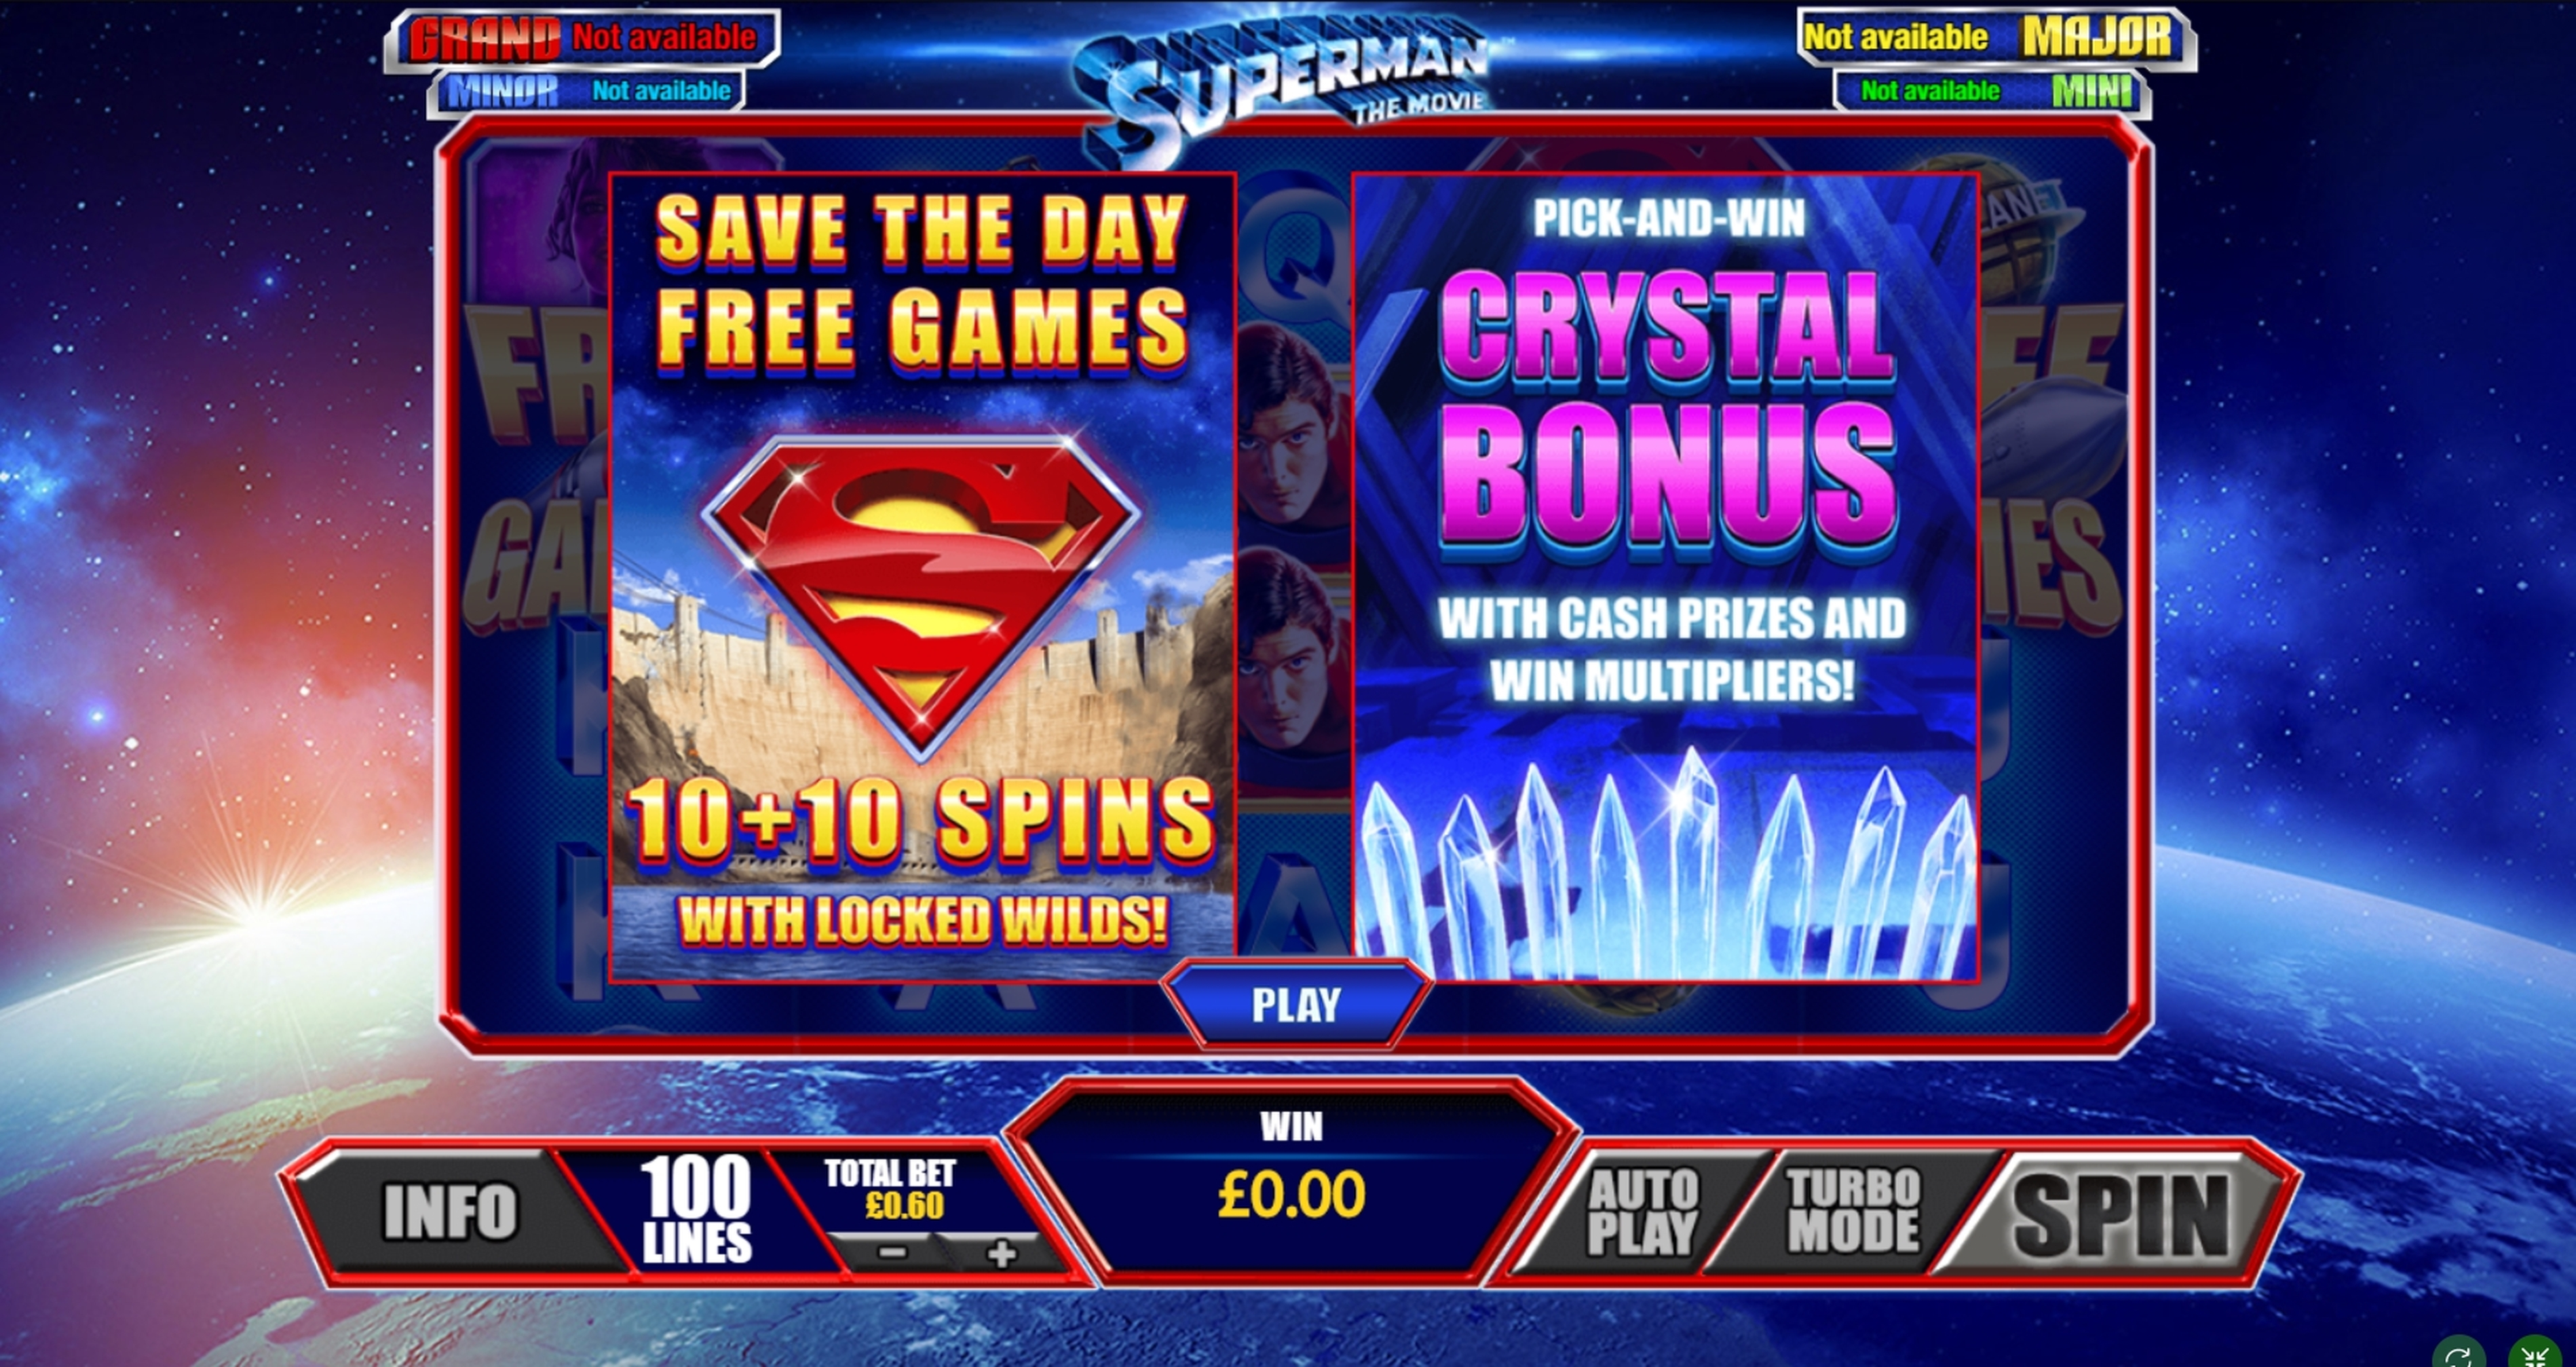 Play Superman The Movie Free Casino Slot Game by Playtech